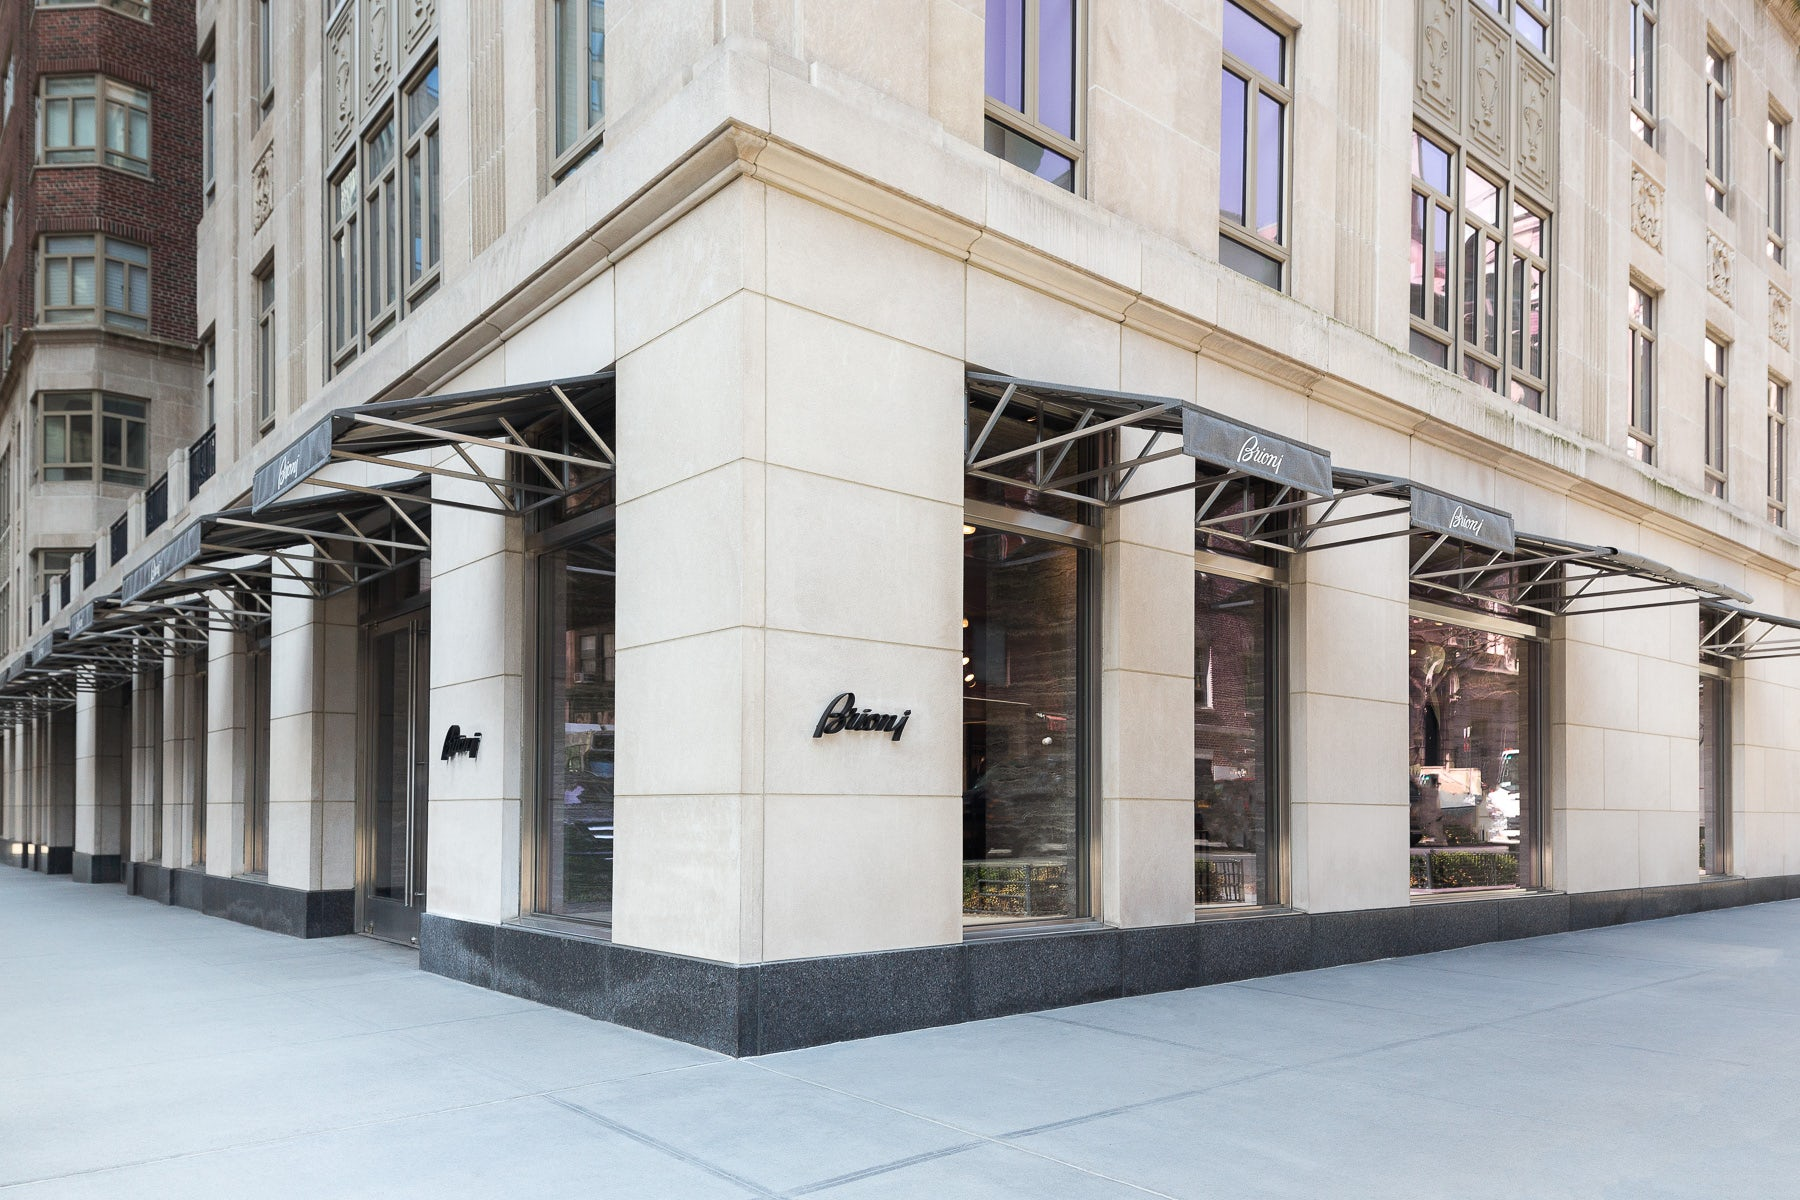 Brioni's flagship store in New York | Source: Courtesy